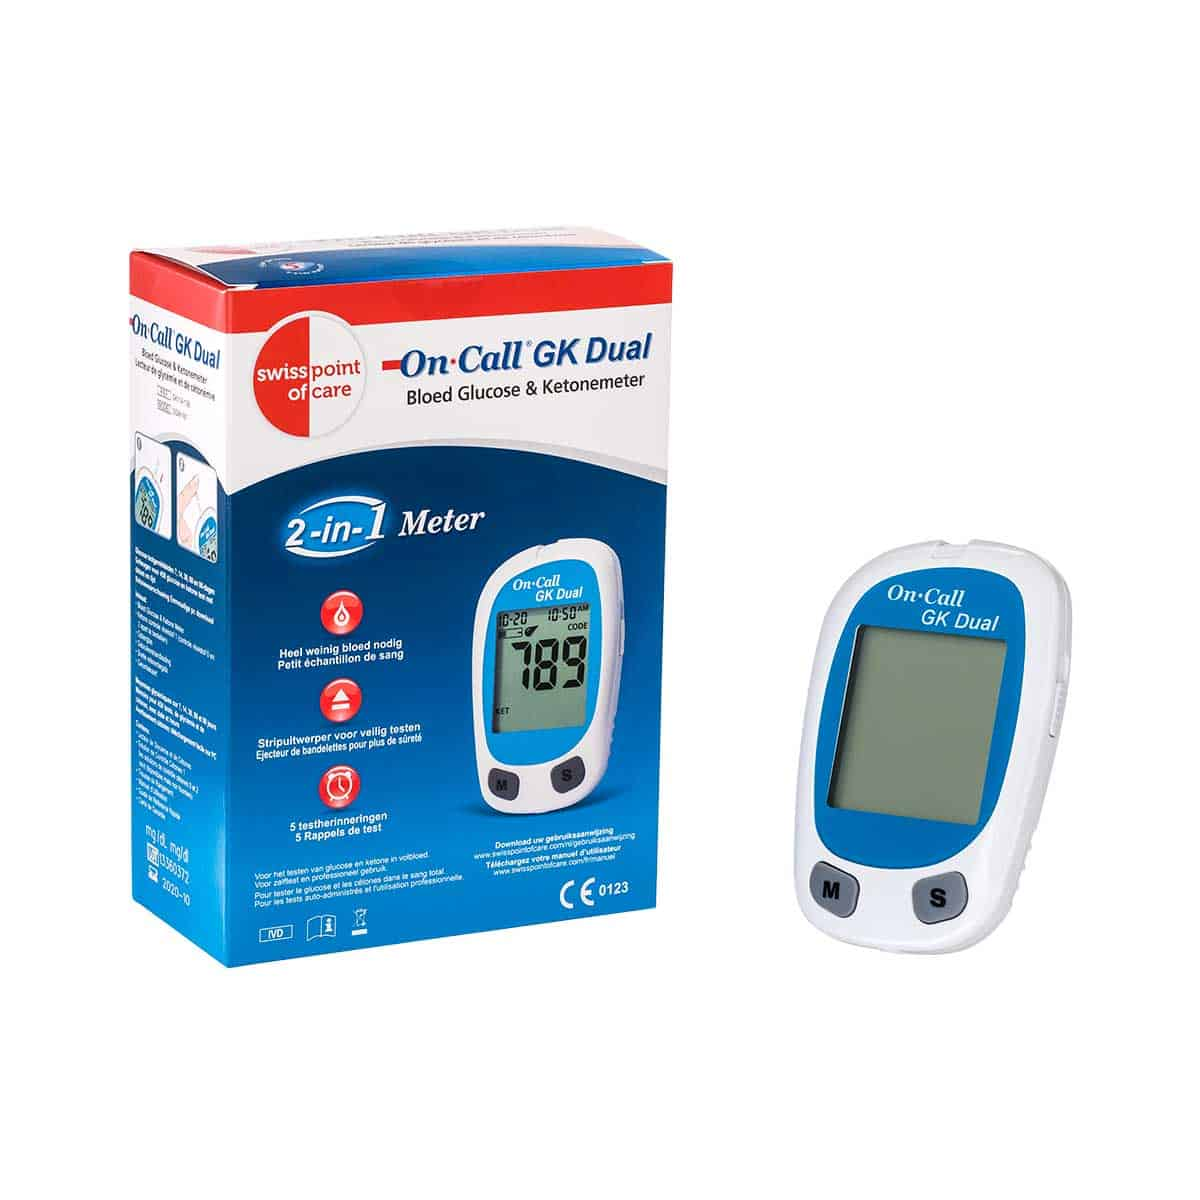 Gk Dual Glucose And Ketone Meter Excl Teststrips Lancets Lancing Device Swiss Point Of Care